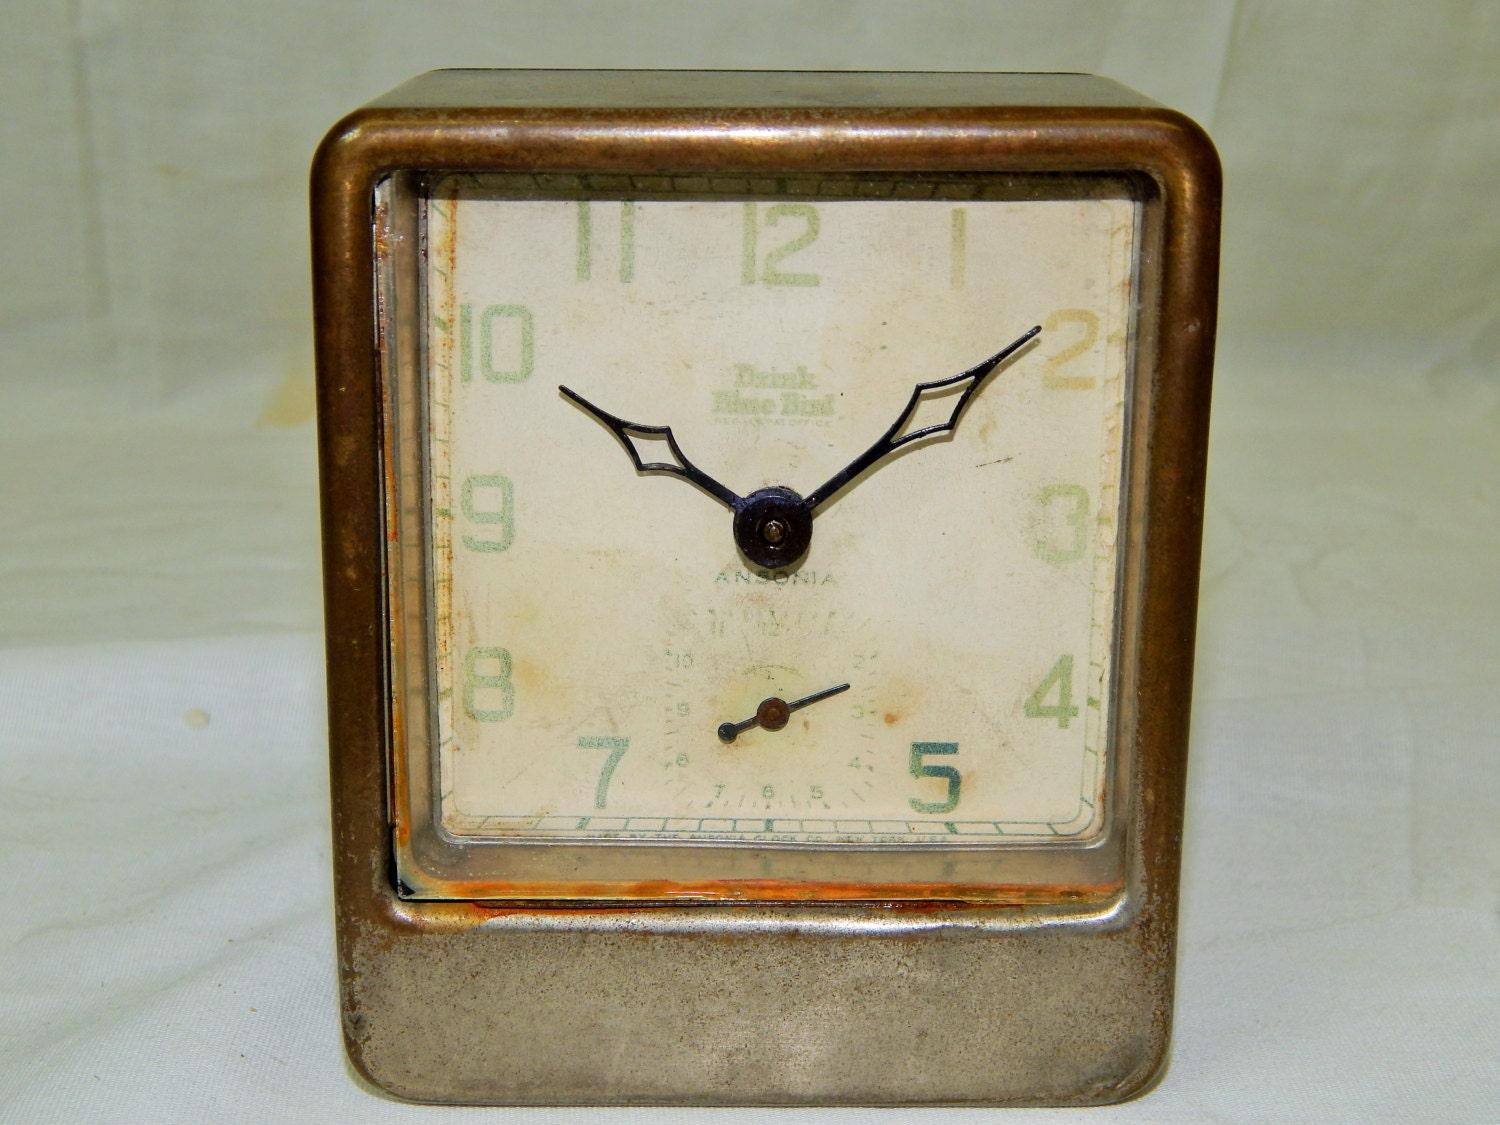 112 cool antique ansonia art deco alarm clock still ticking Art deco alarm clocks